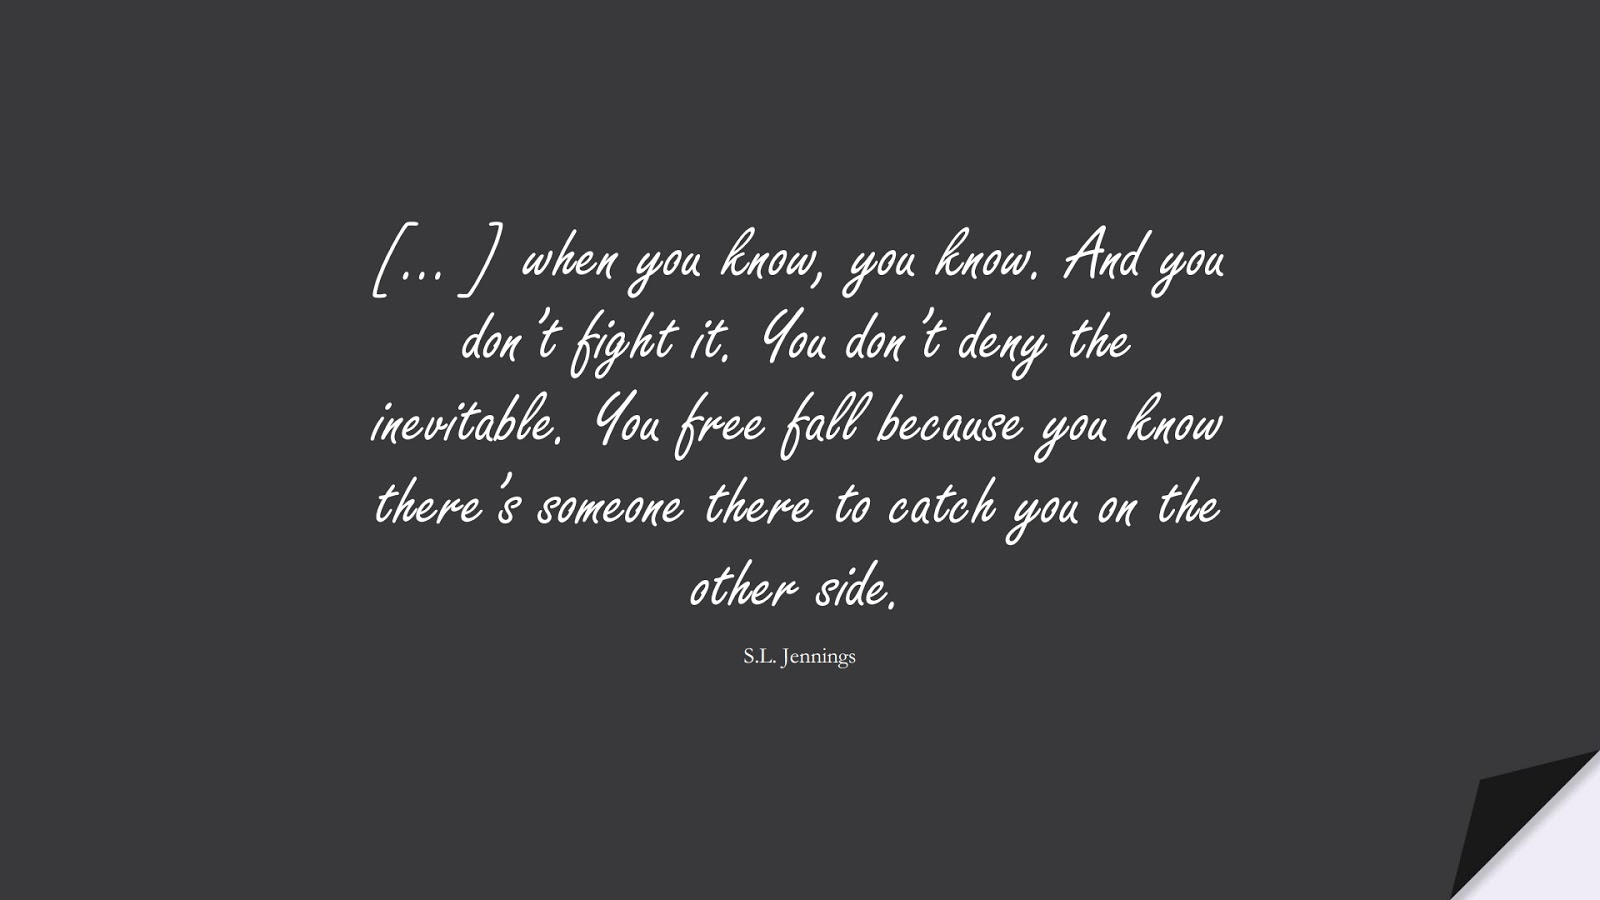 [… ] when you know, you know. And you don't fight it. You don't deny the inevitable. You free fall because you know there's someone there to catch you on the other side. (S.L. Jennings);  #LoveQuotes